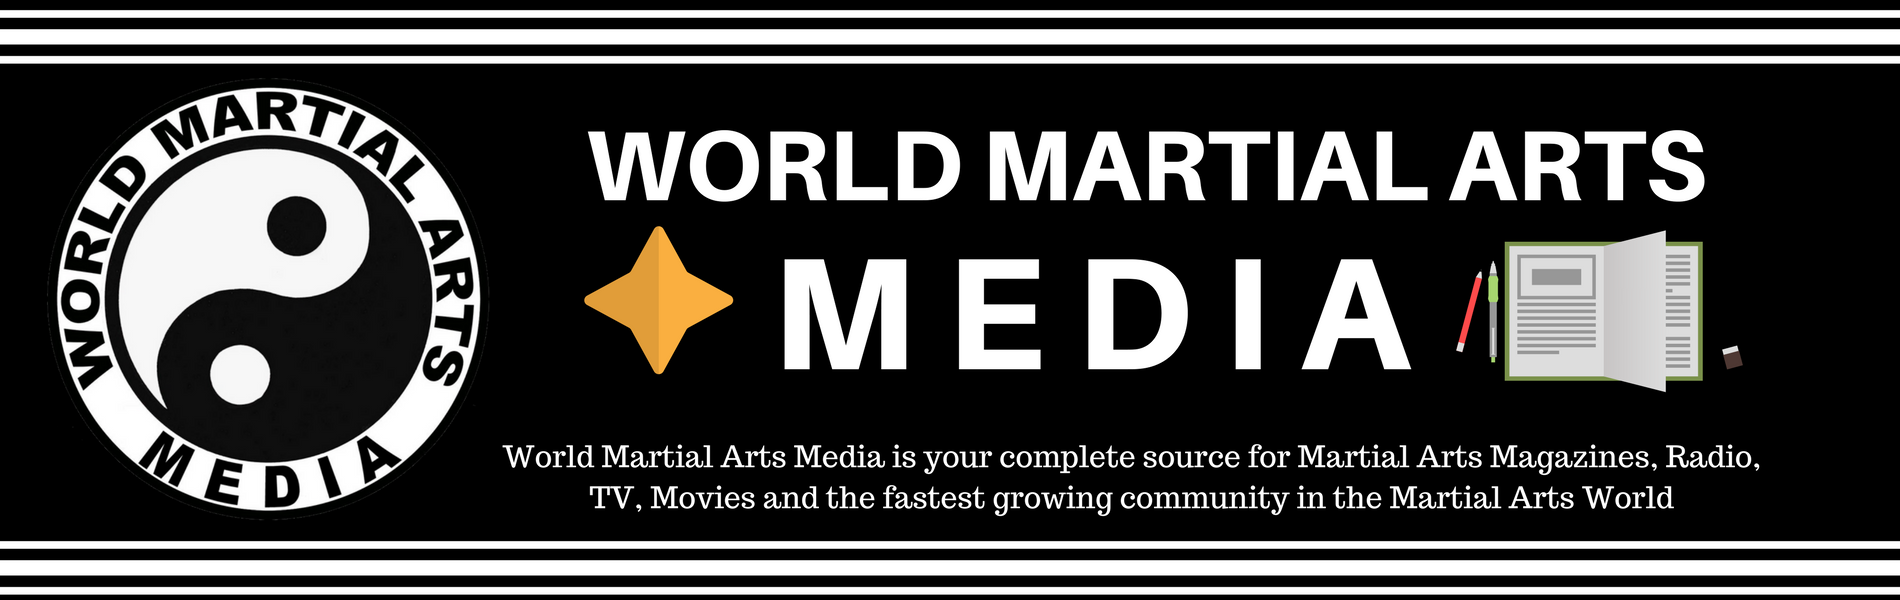 WORLD MARTIAL ARTS MEDIA